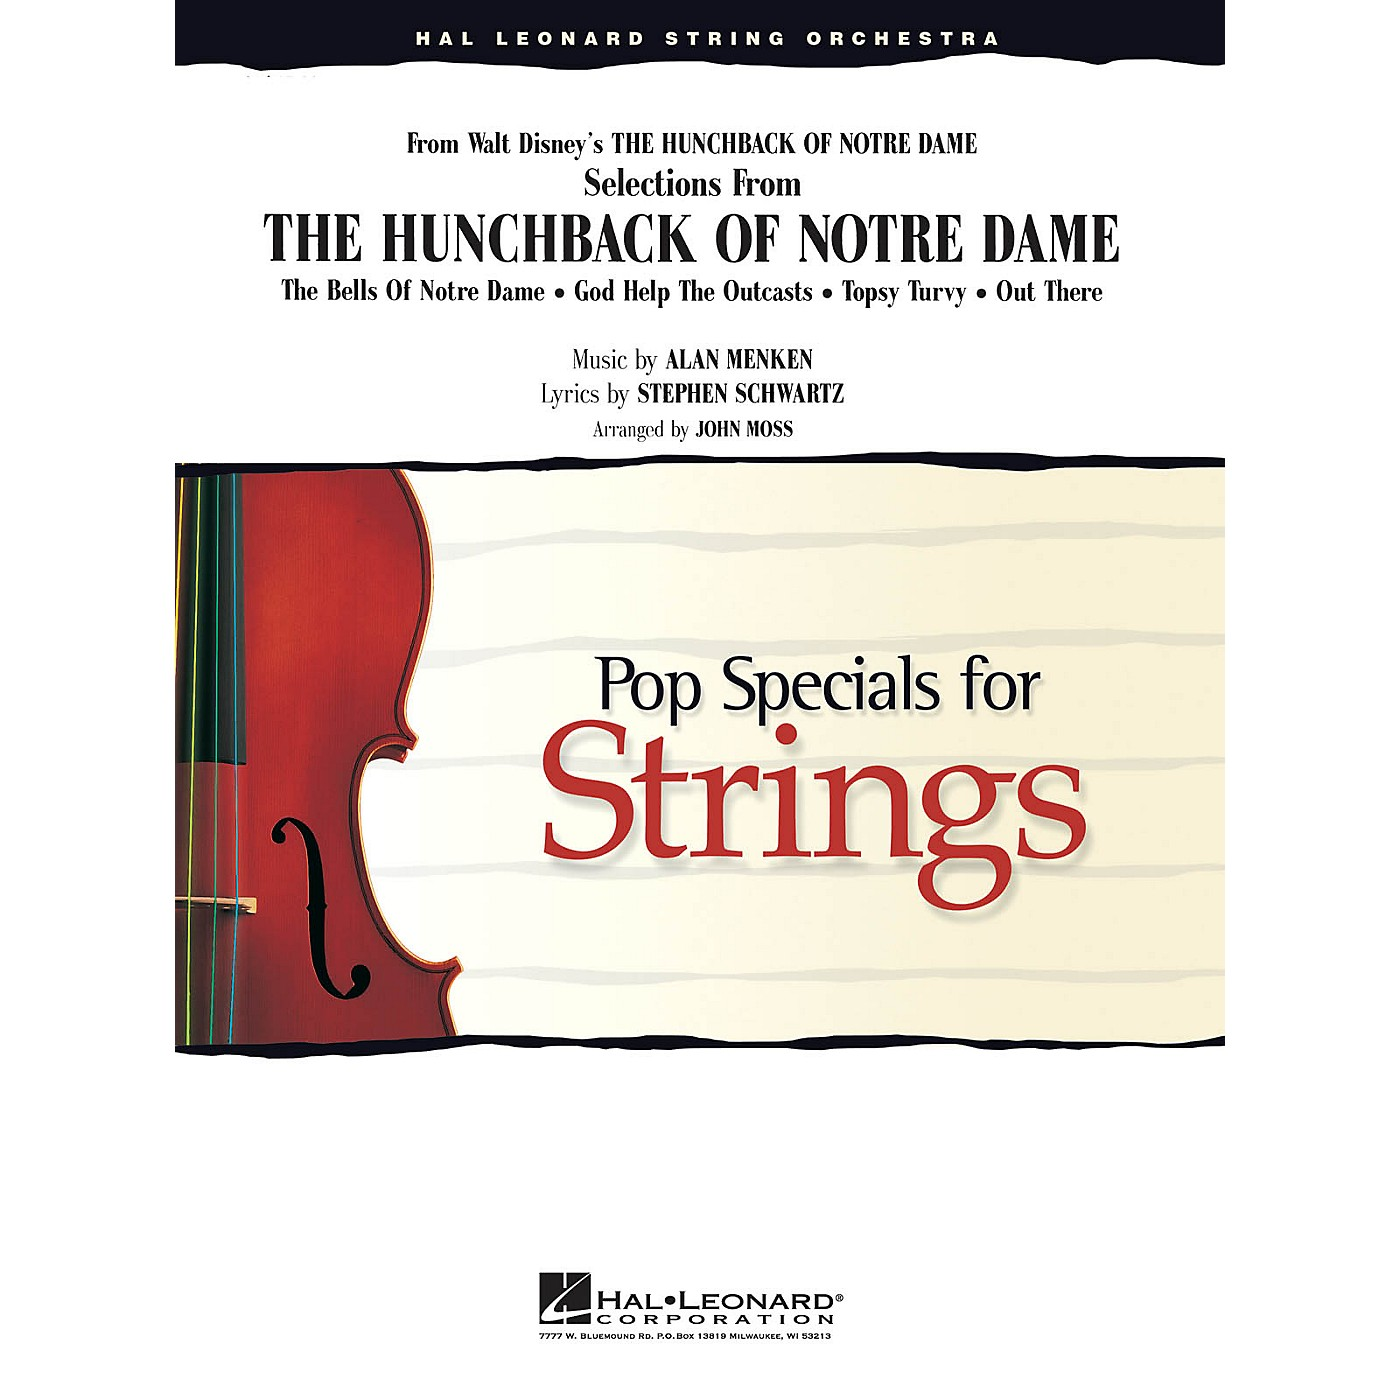 Hal Leonard Selections from The Hunchback of Notre Dame Pop Specials for Strings Series Arranged by John Moss thumbnail